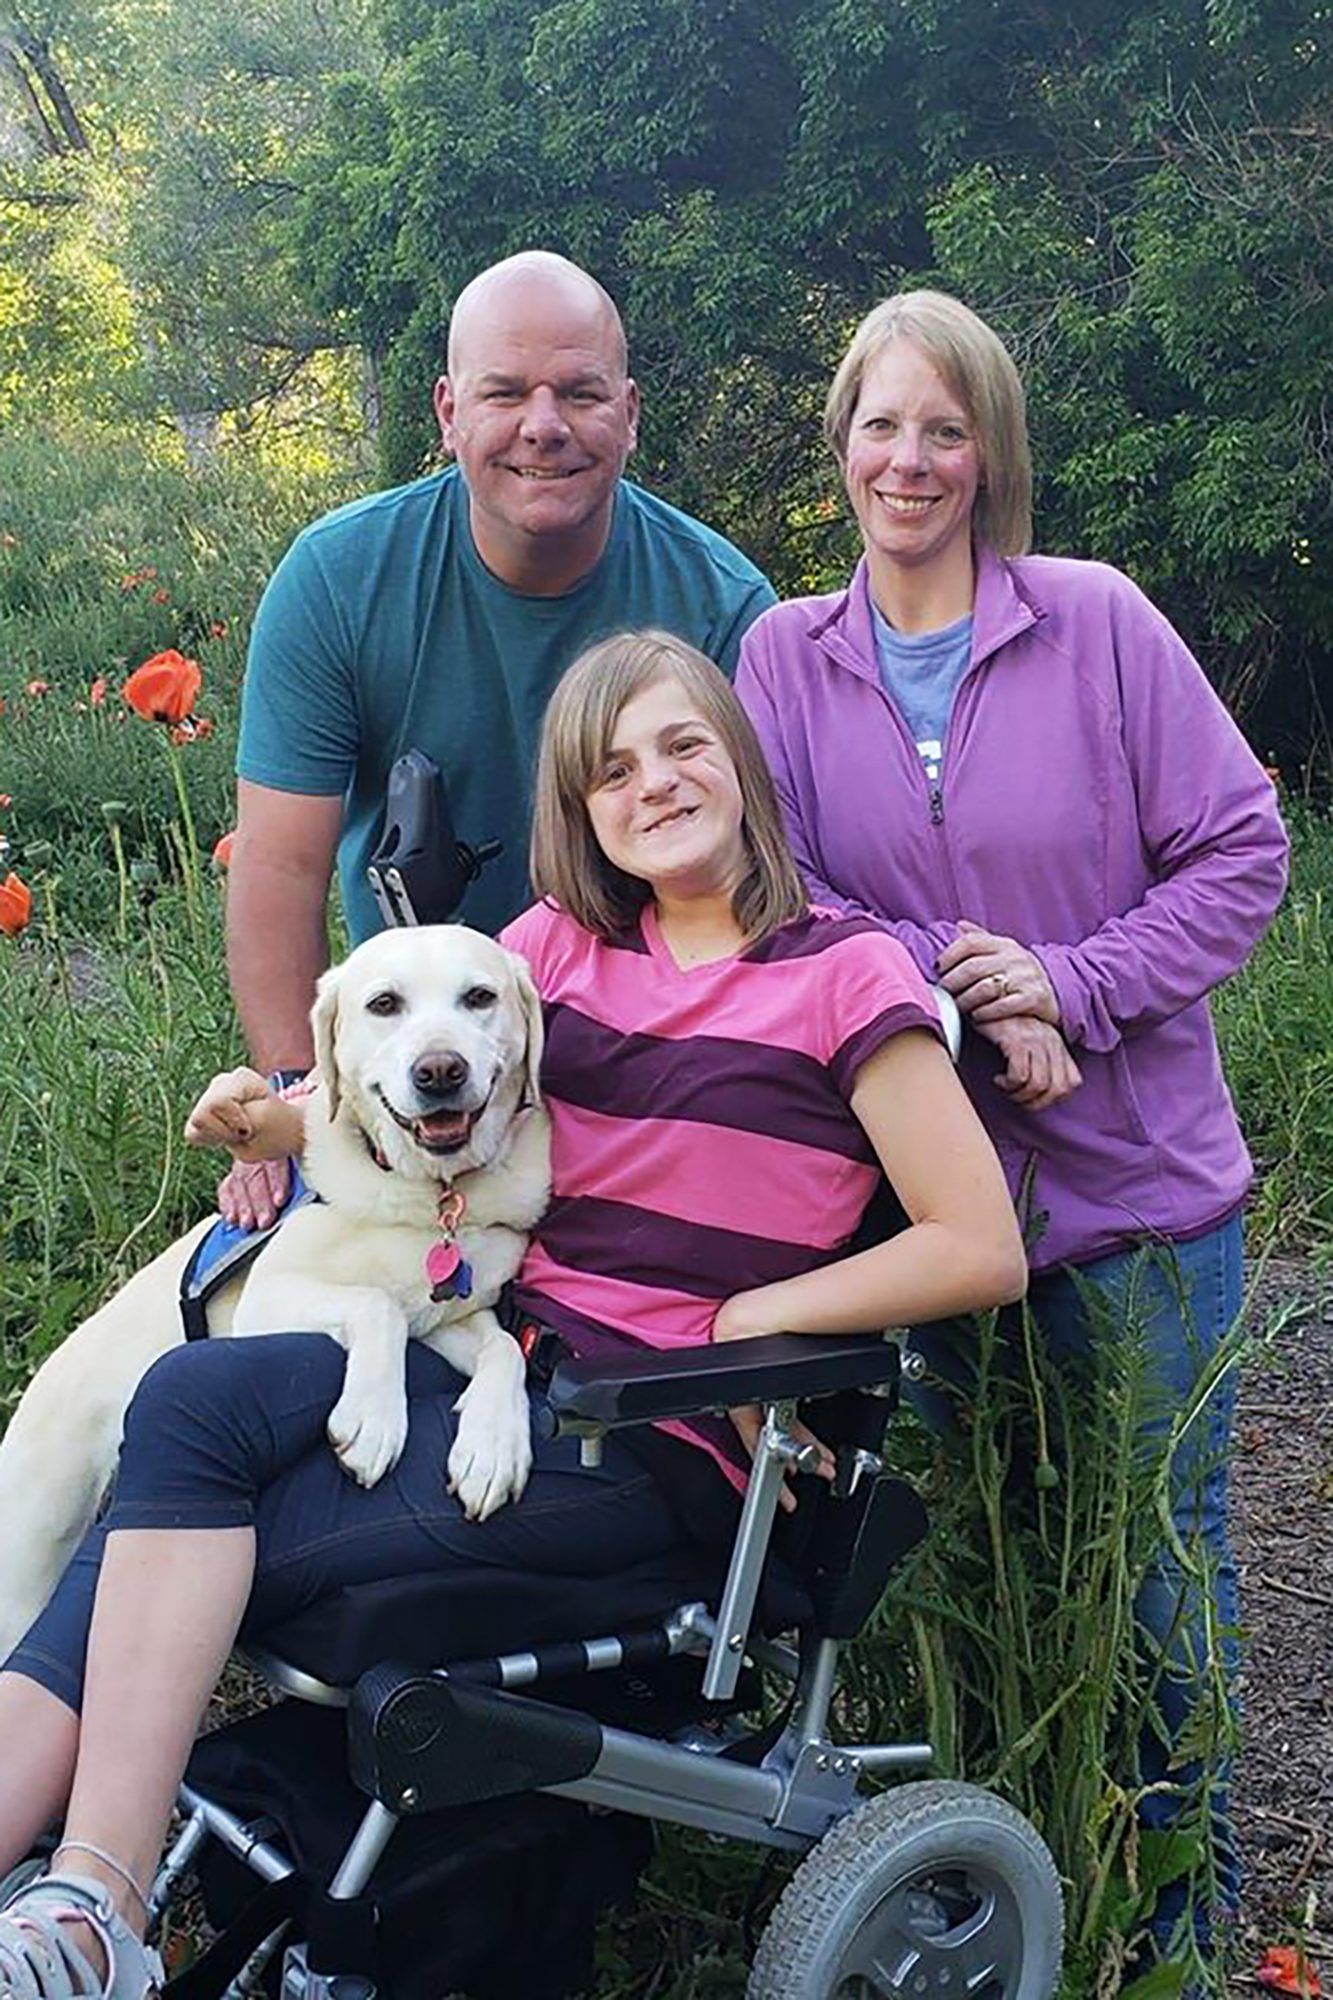 Emily the service dog with her handler and family